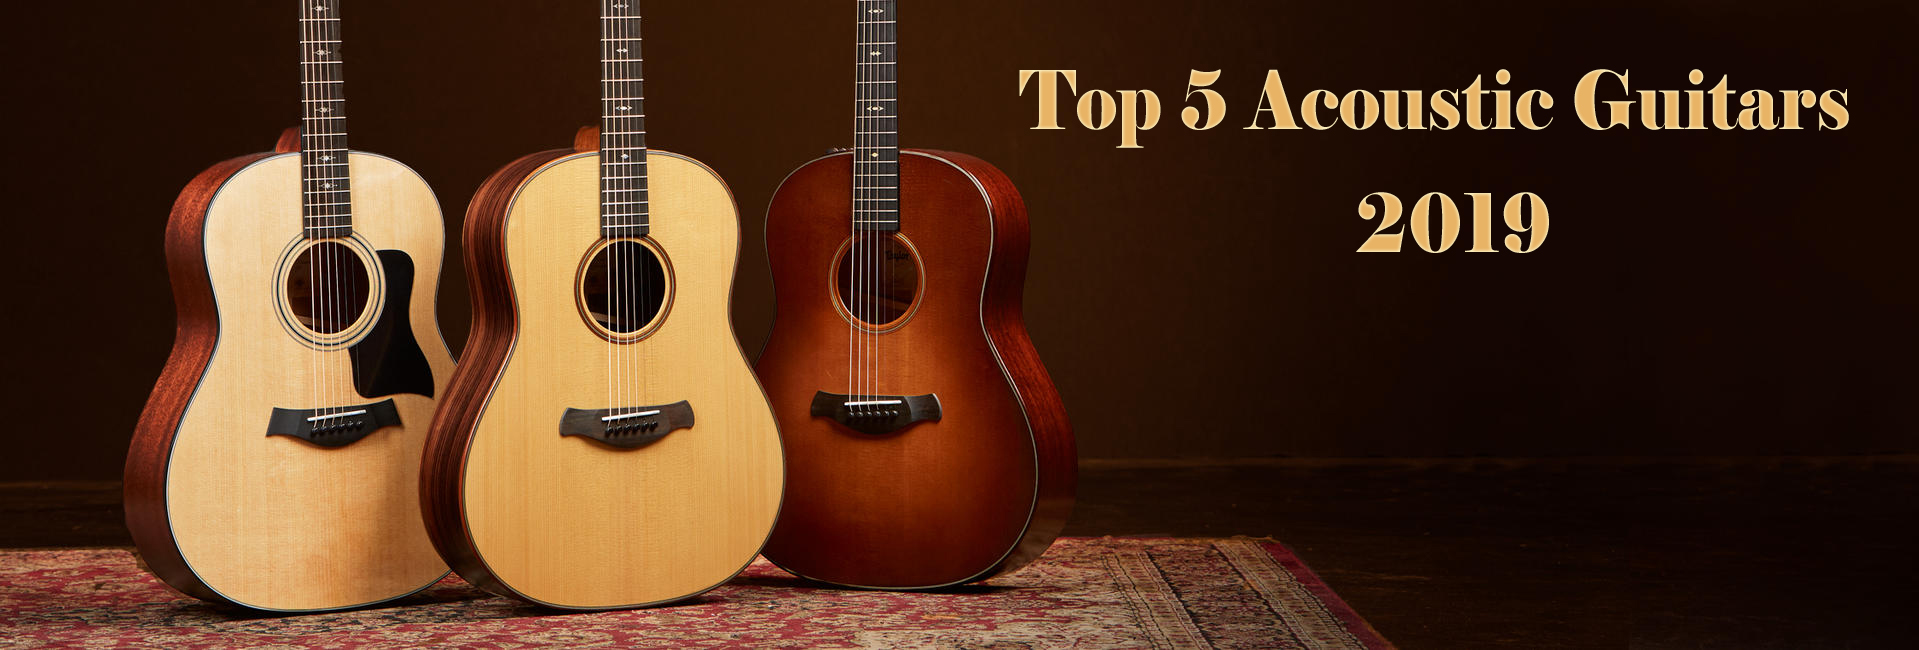 Top 5 Acoustic Guitars in 2020 - Beginners Starter Kit